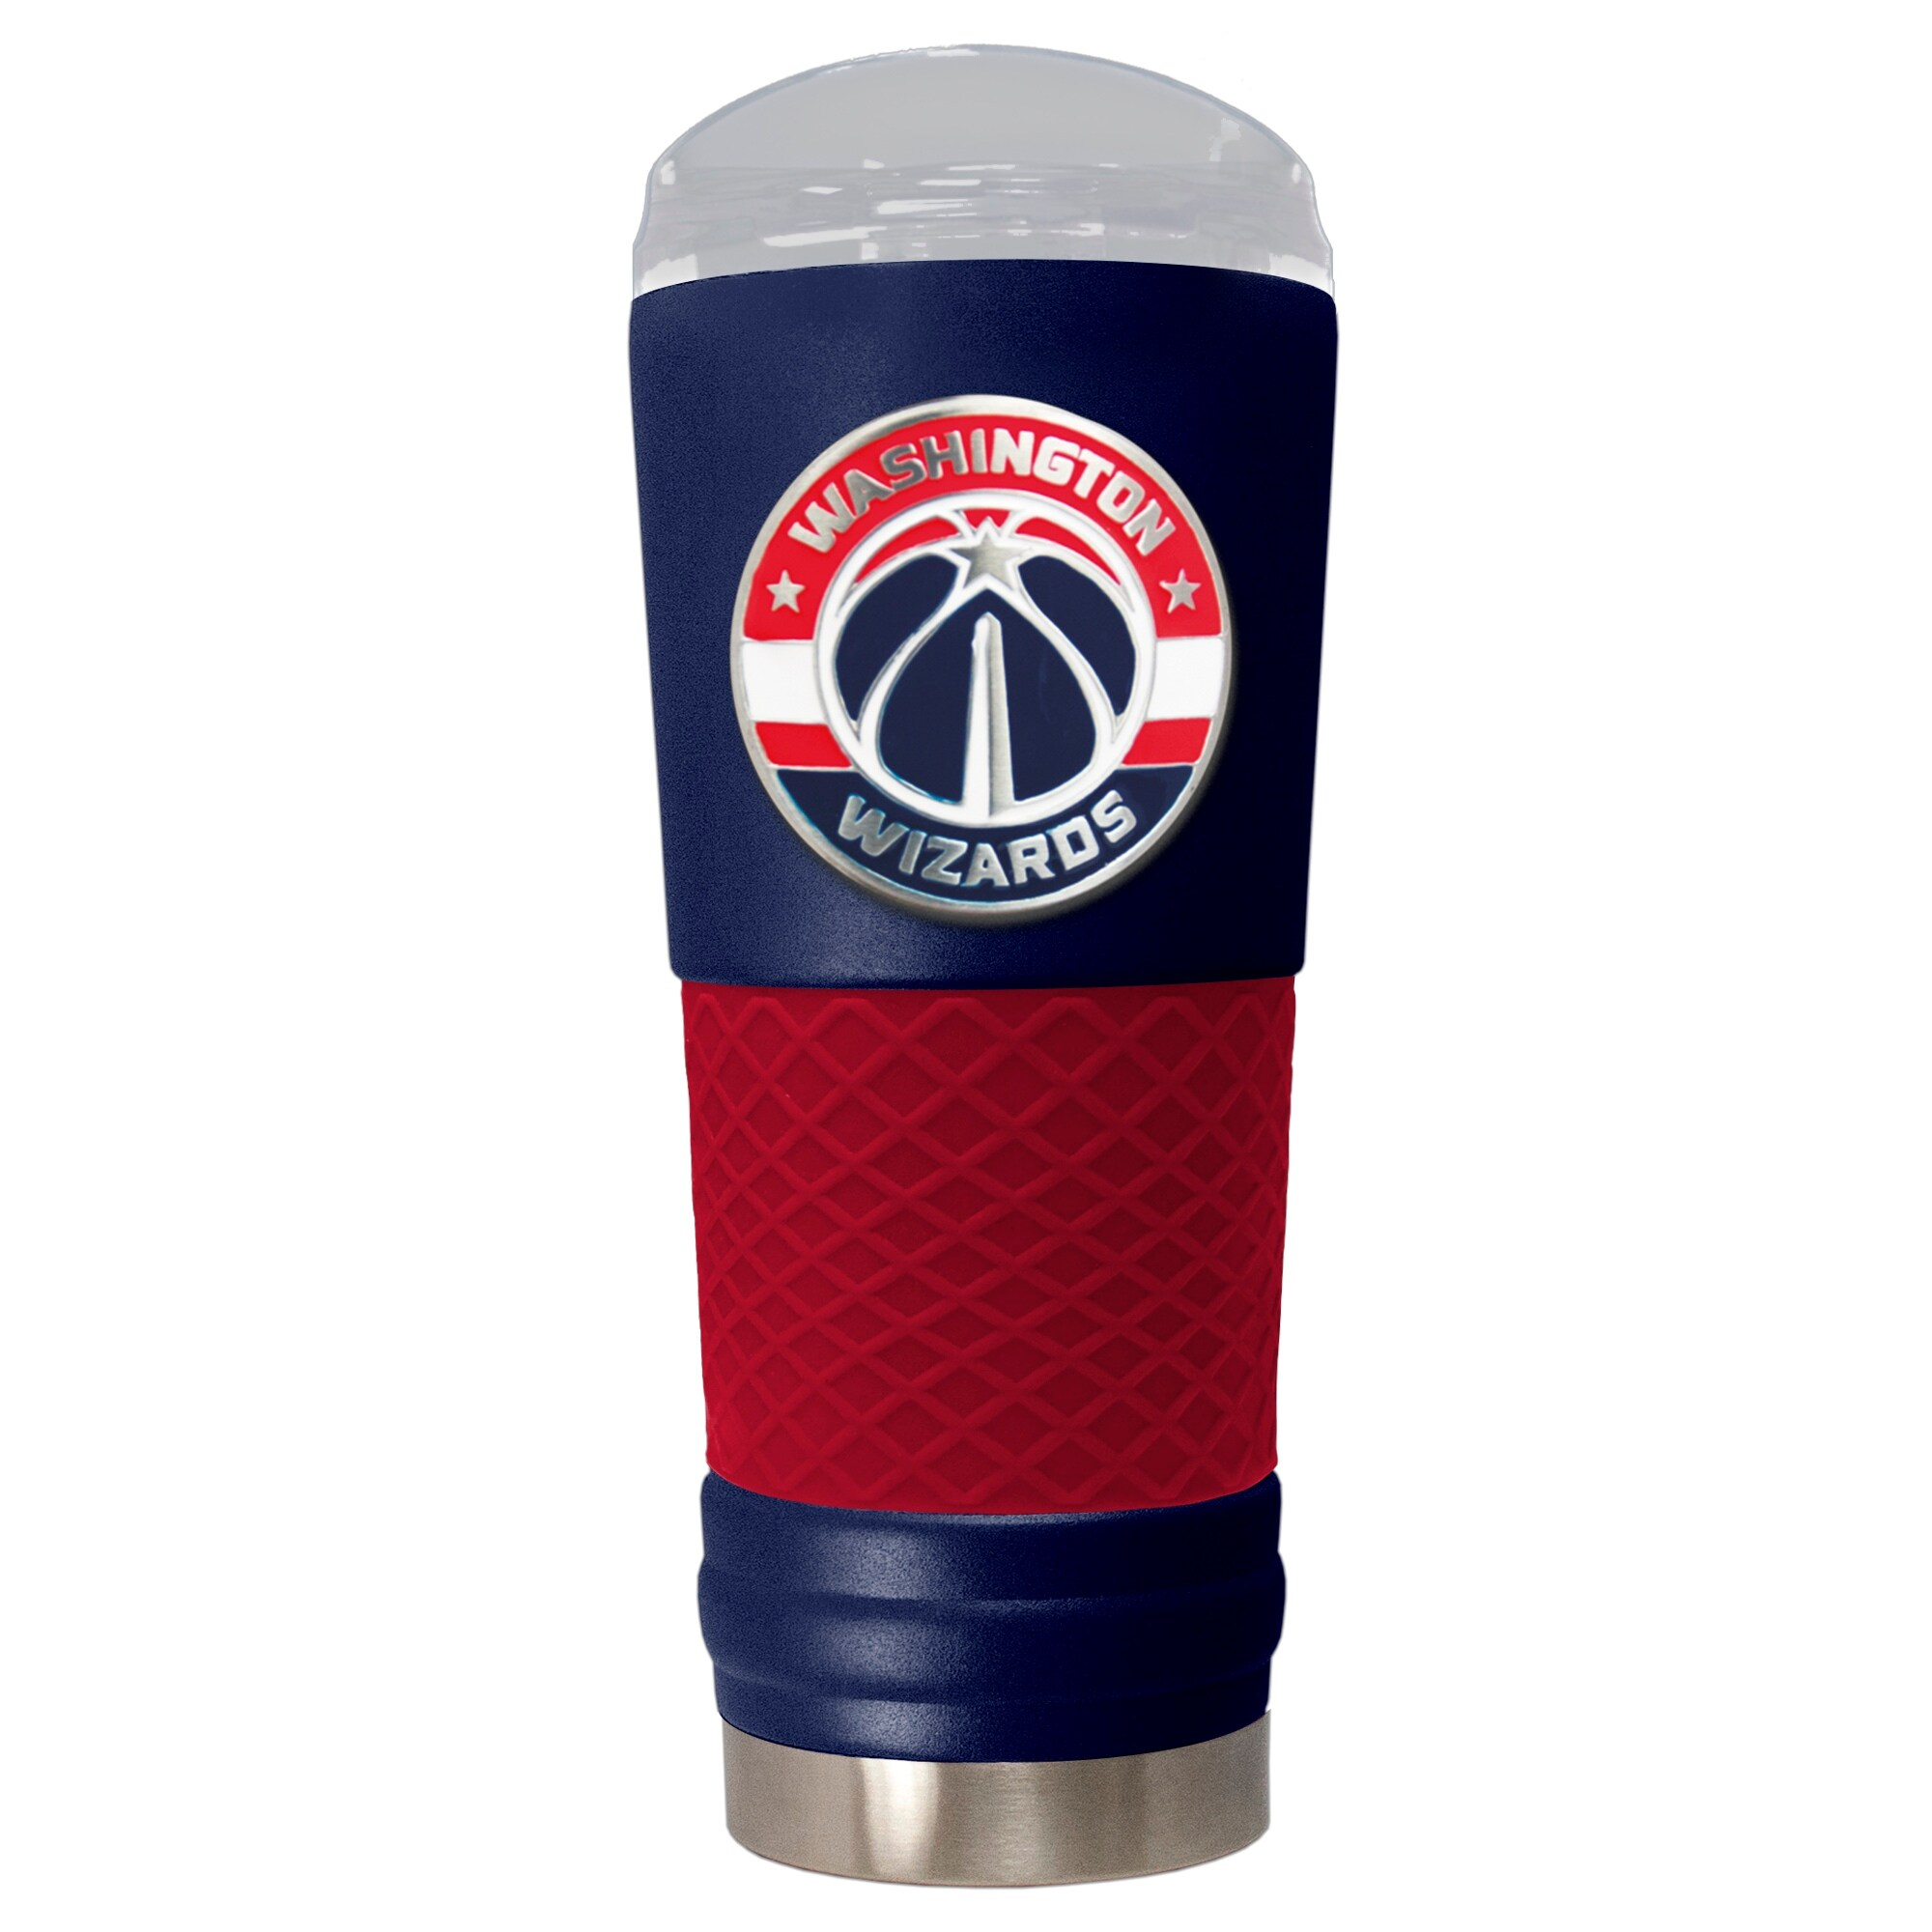 Washington Wizards 24oz. Powder Coated Draft Travel Mug - Blue